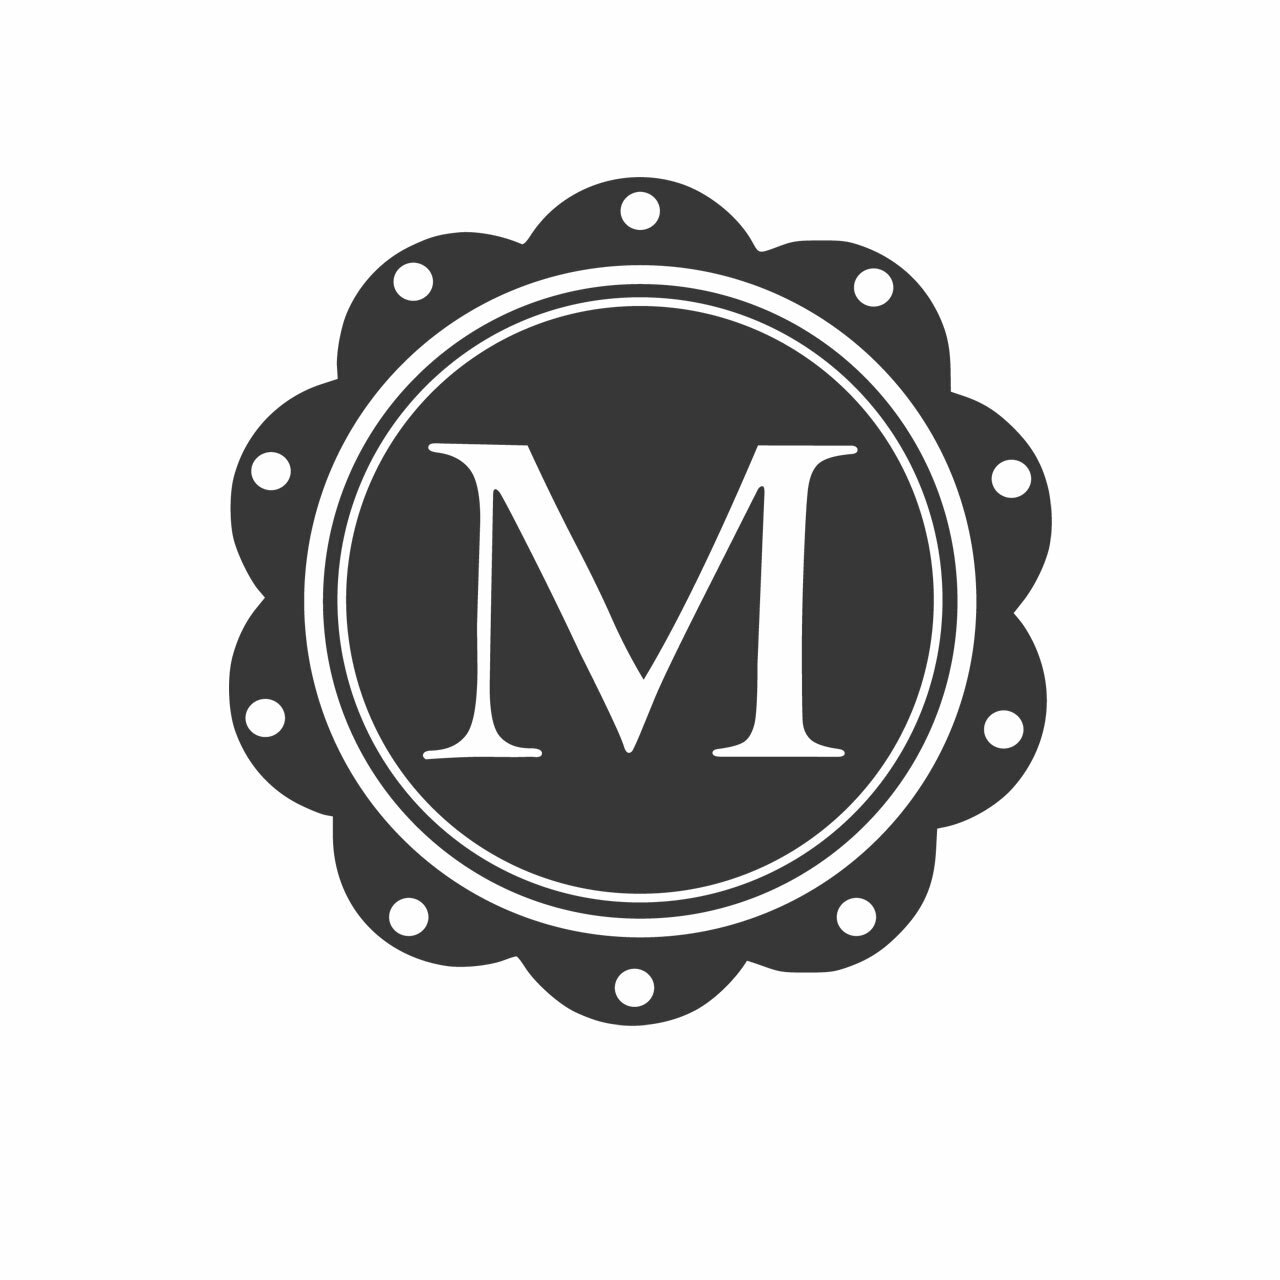 Charcoal grey single letter circular monogram with scalloped edges and the letter M in the middle on a white background